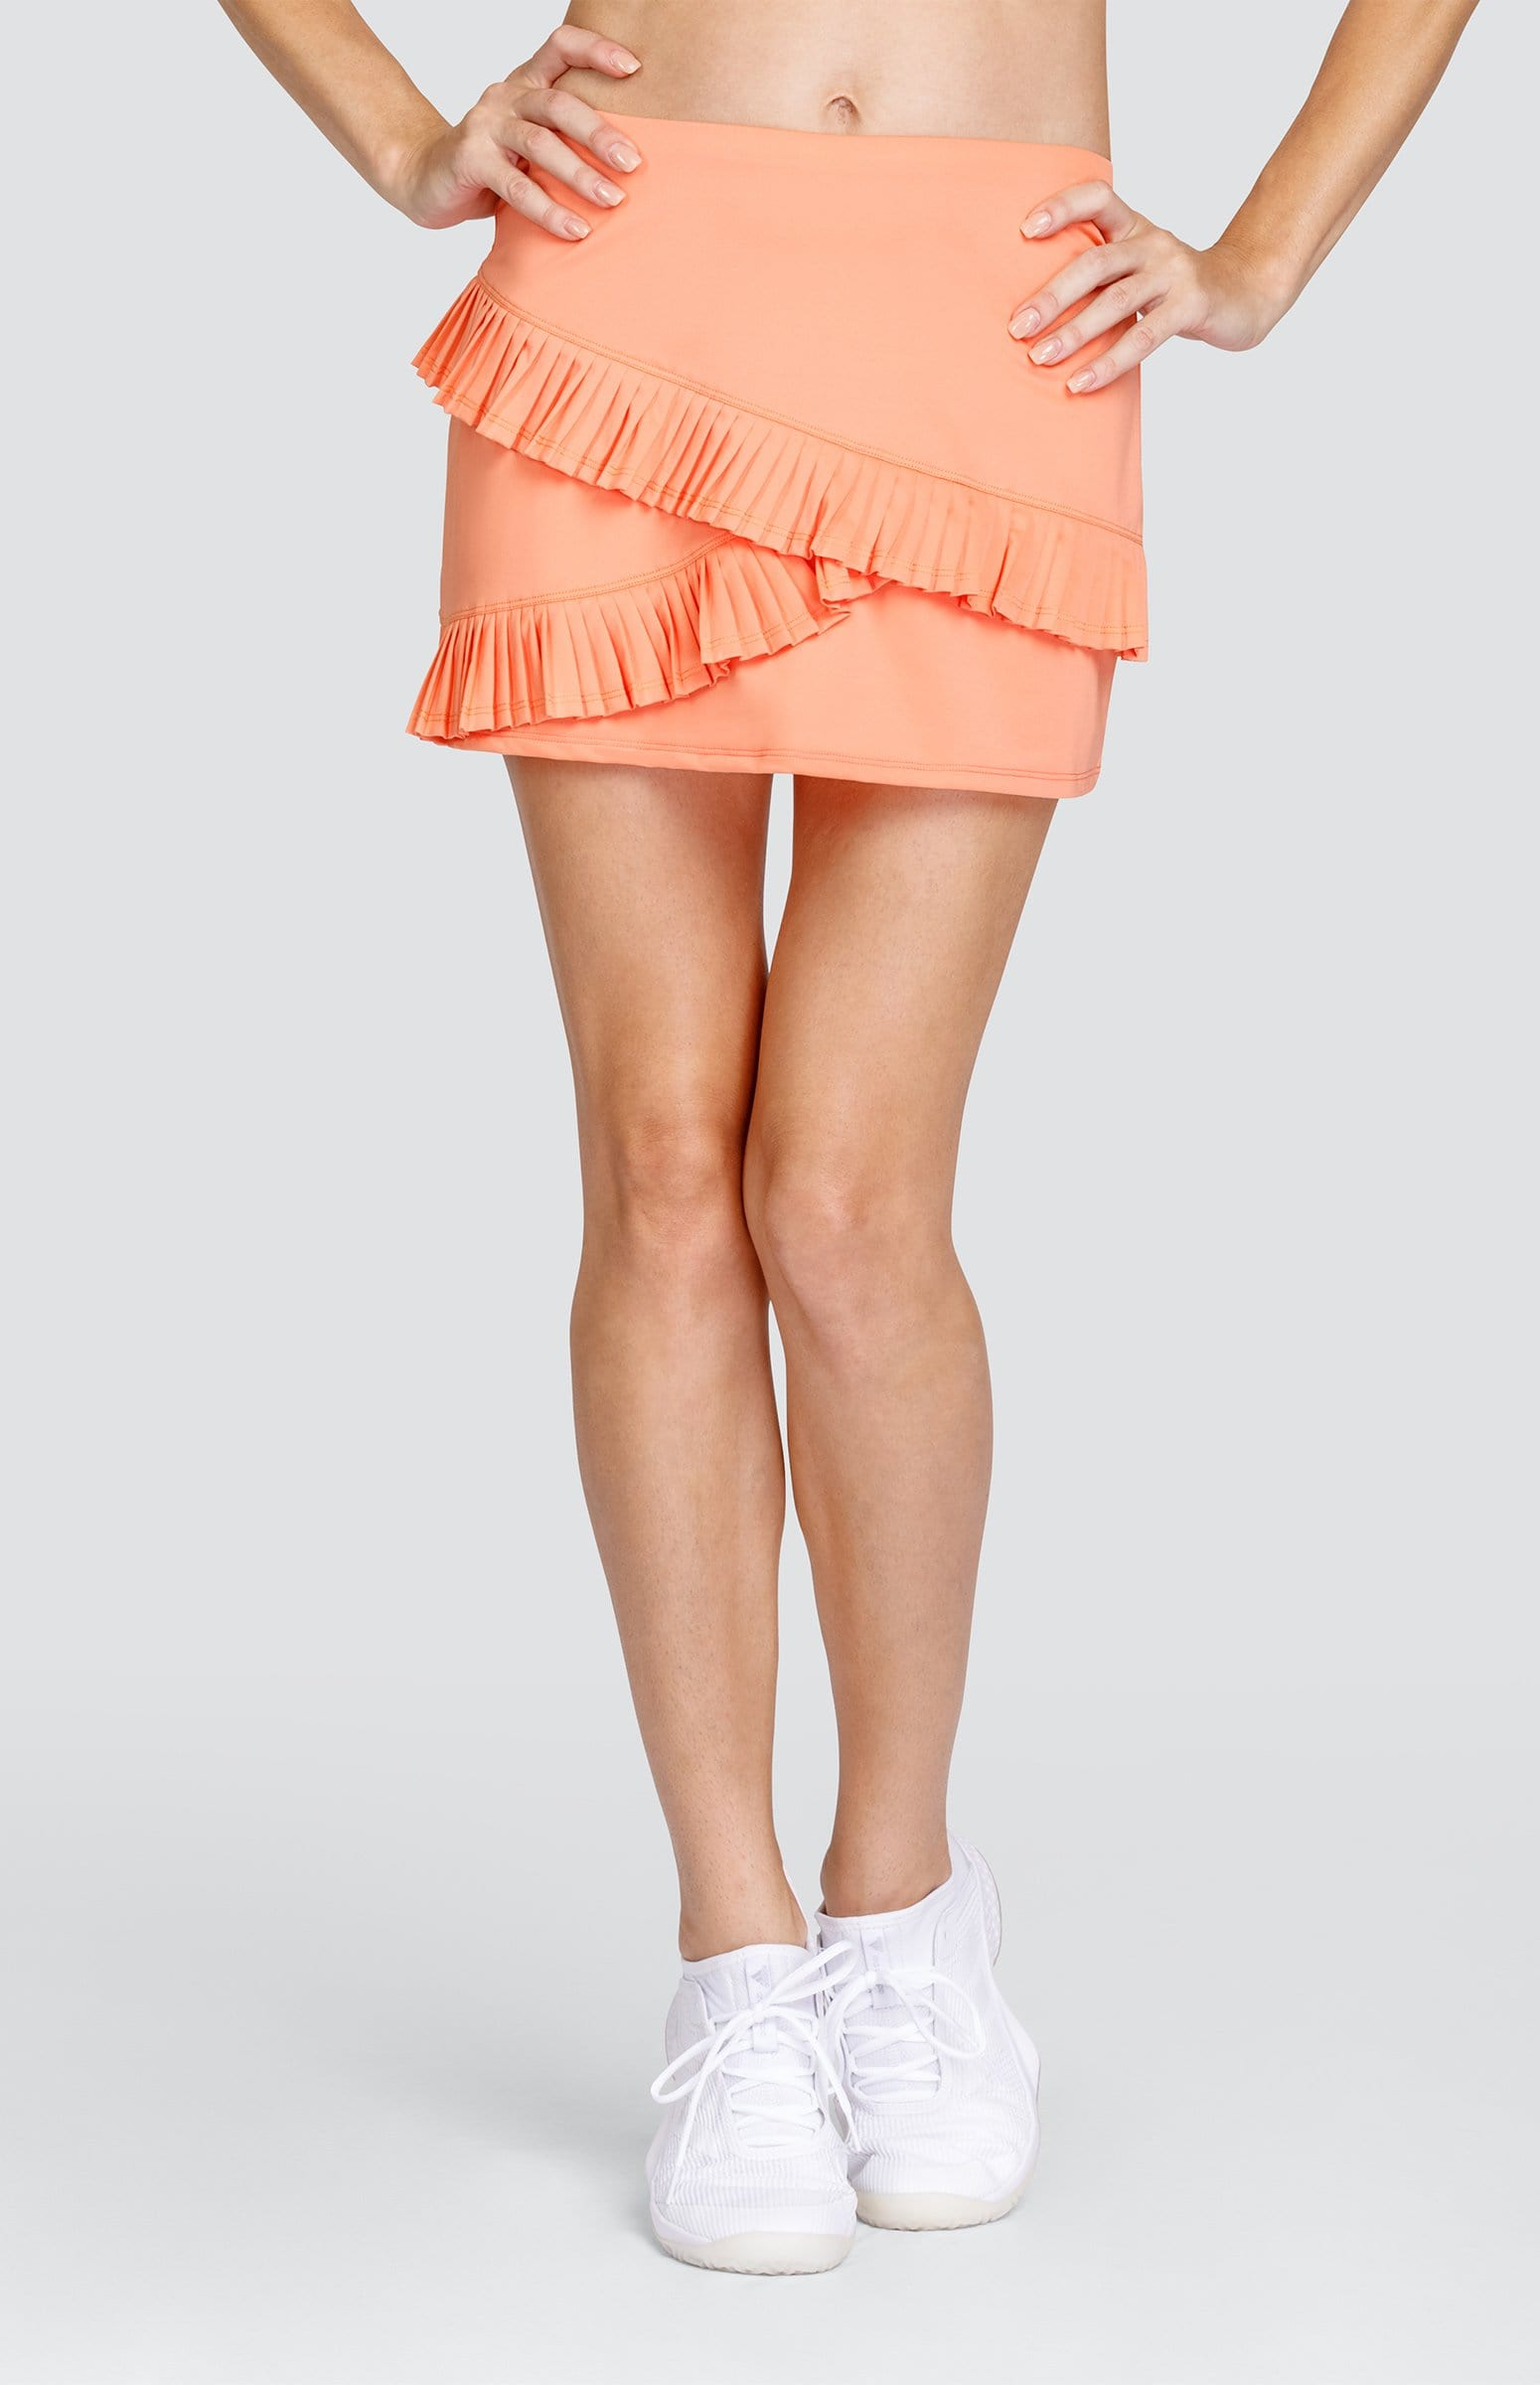 Kyla Skort - Sundown - 13.5